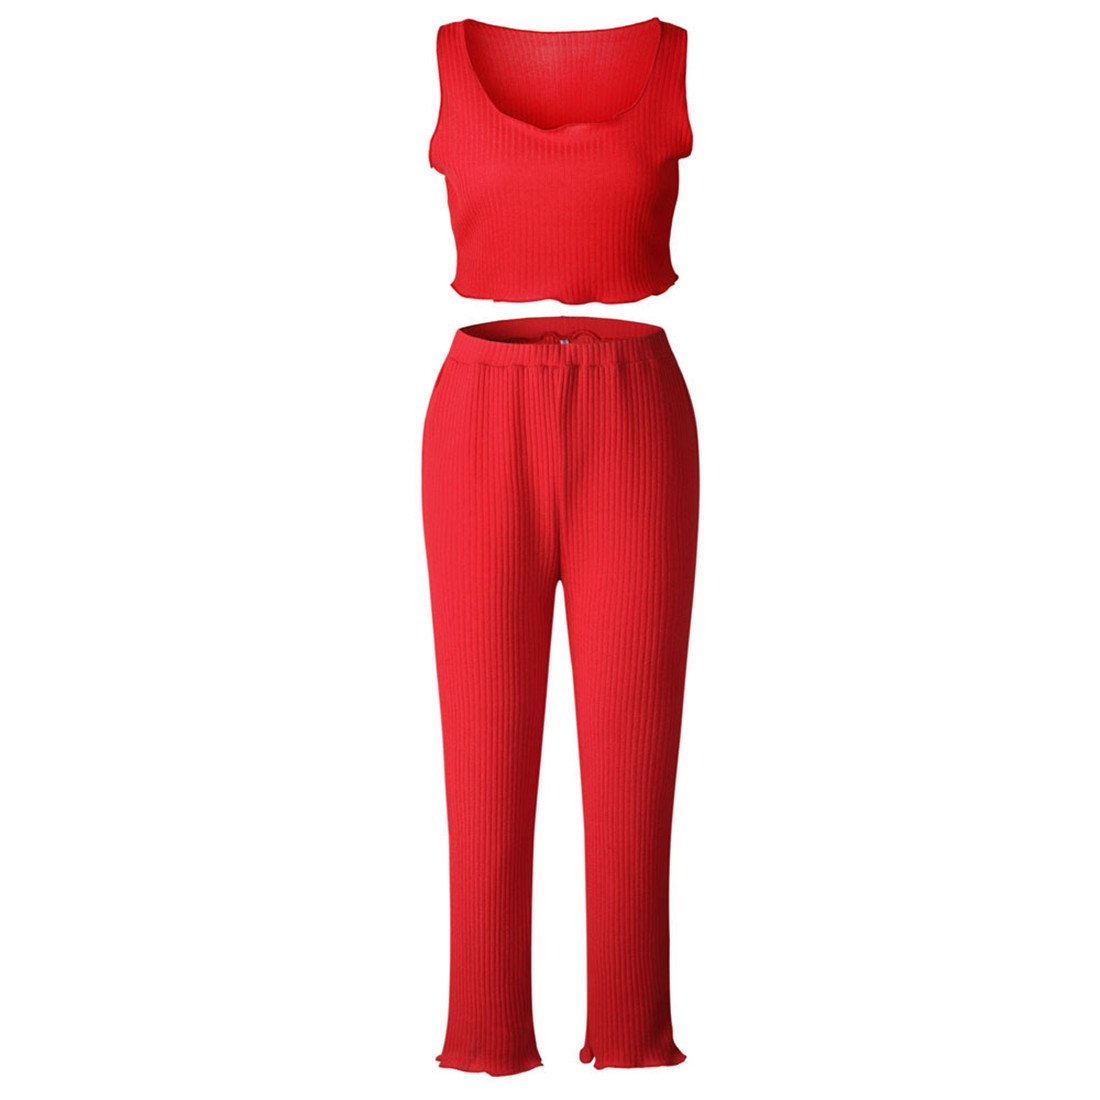 Womens Outfits,Moonuy Girl Sleeveless Vess Shirt Tops Blouse Pants 2PCS Romper Jumpsuits For Ladies Fashion Spring Autumn Summer Skirt Jumper Jumpsuit ...